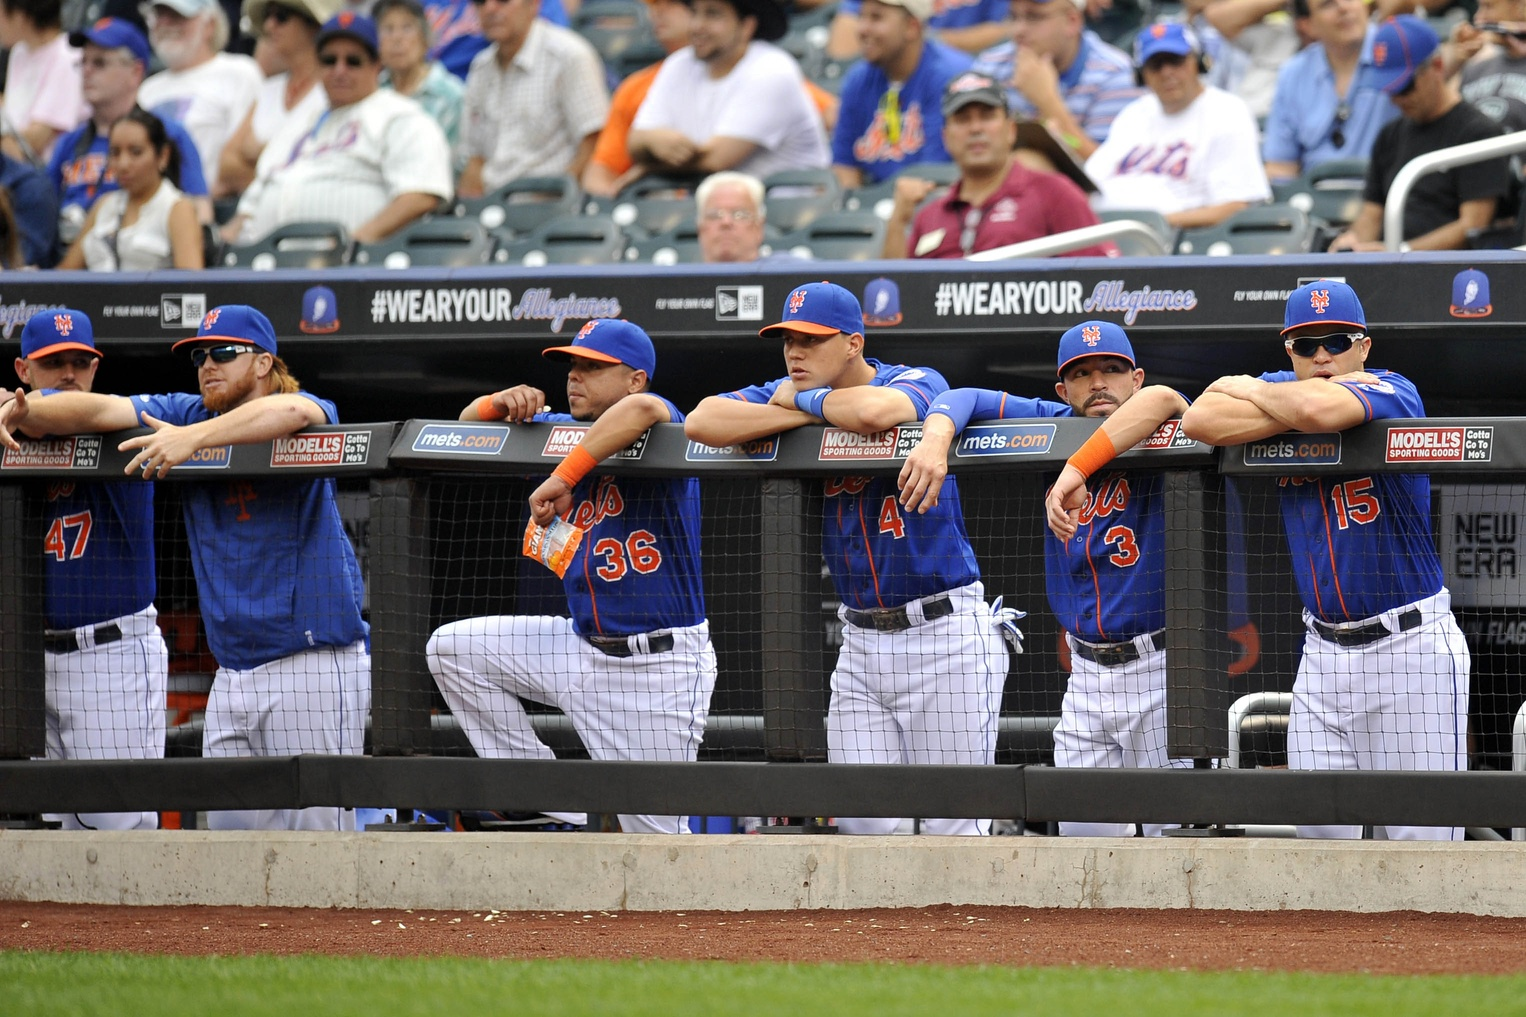 September Hasn't Been So Amazin' For Mets Since '07 Collapse